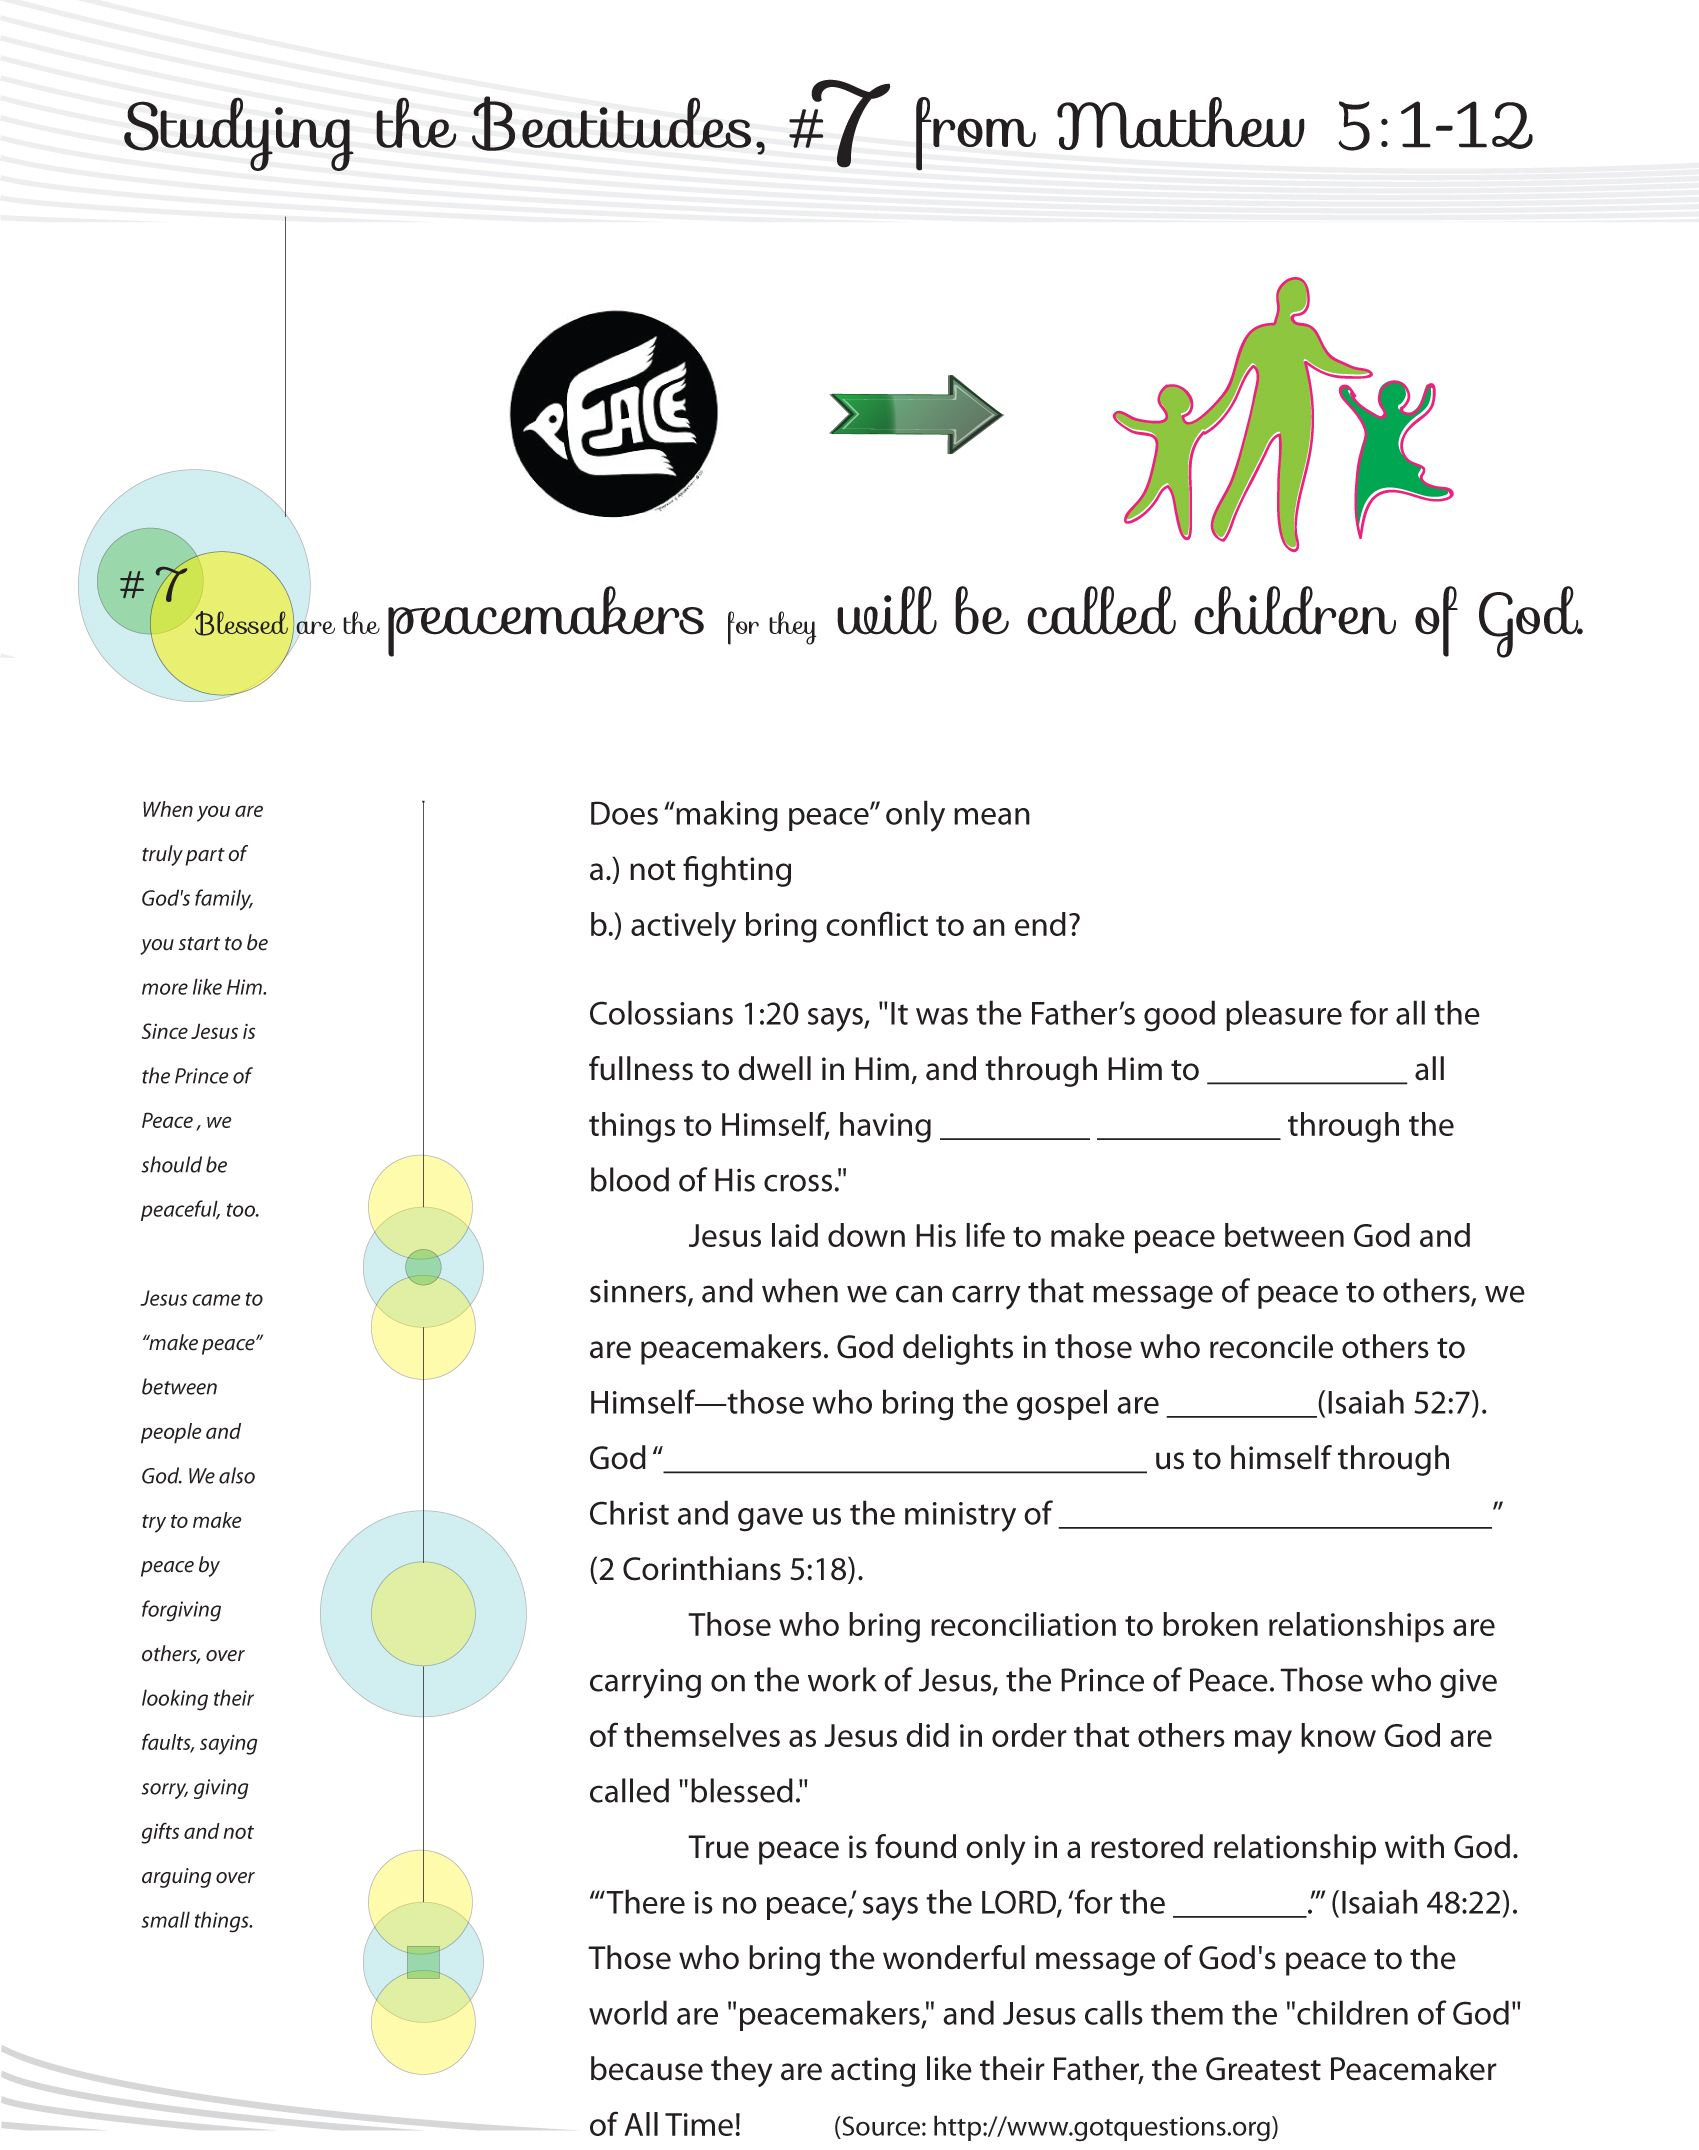 worksheet Corporal And Spiritual Works Of Mercy Worksheet worksheet to teach the 7th beatitude of christian life from jesus teaching his famous sermon